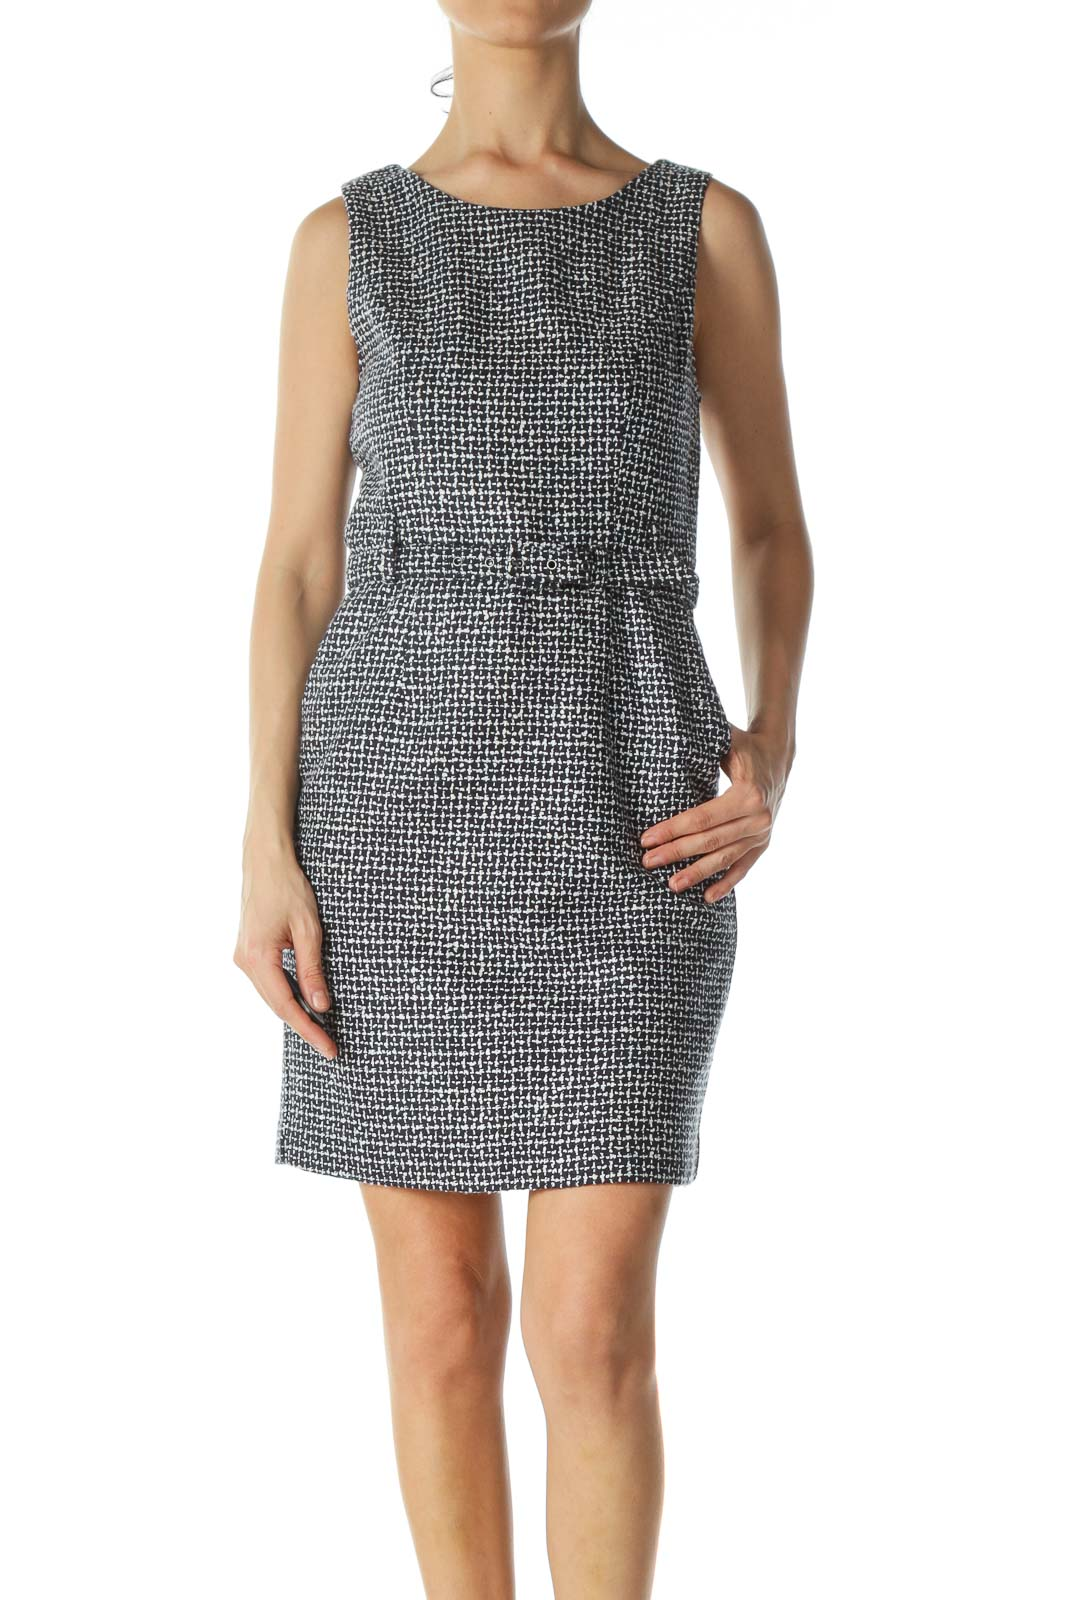 Navy Blue White Knit Texture Belted Work Dress